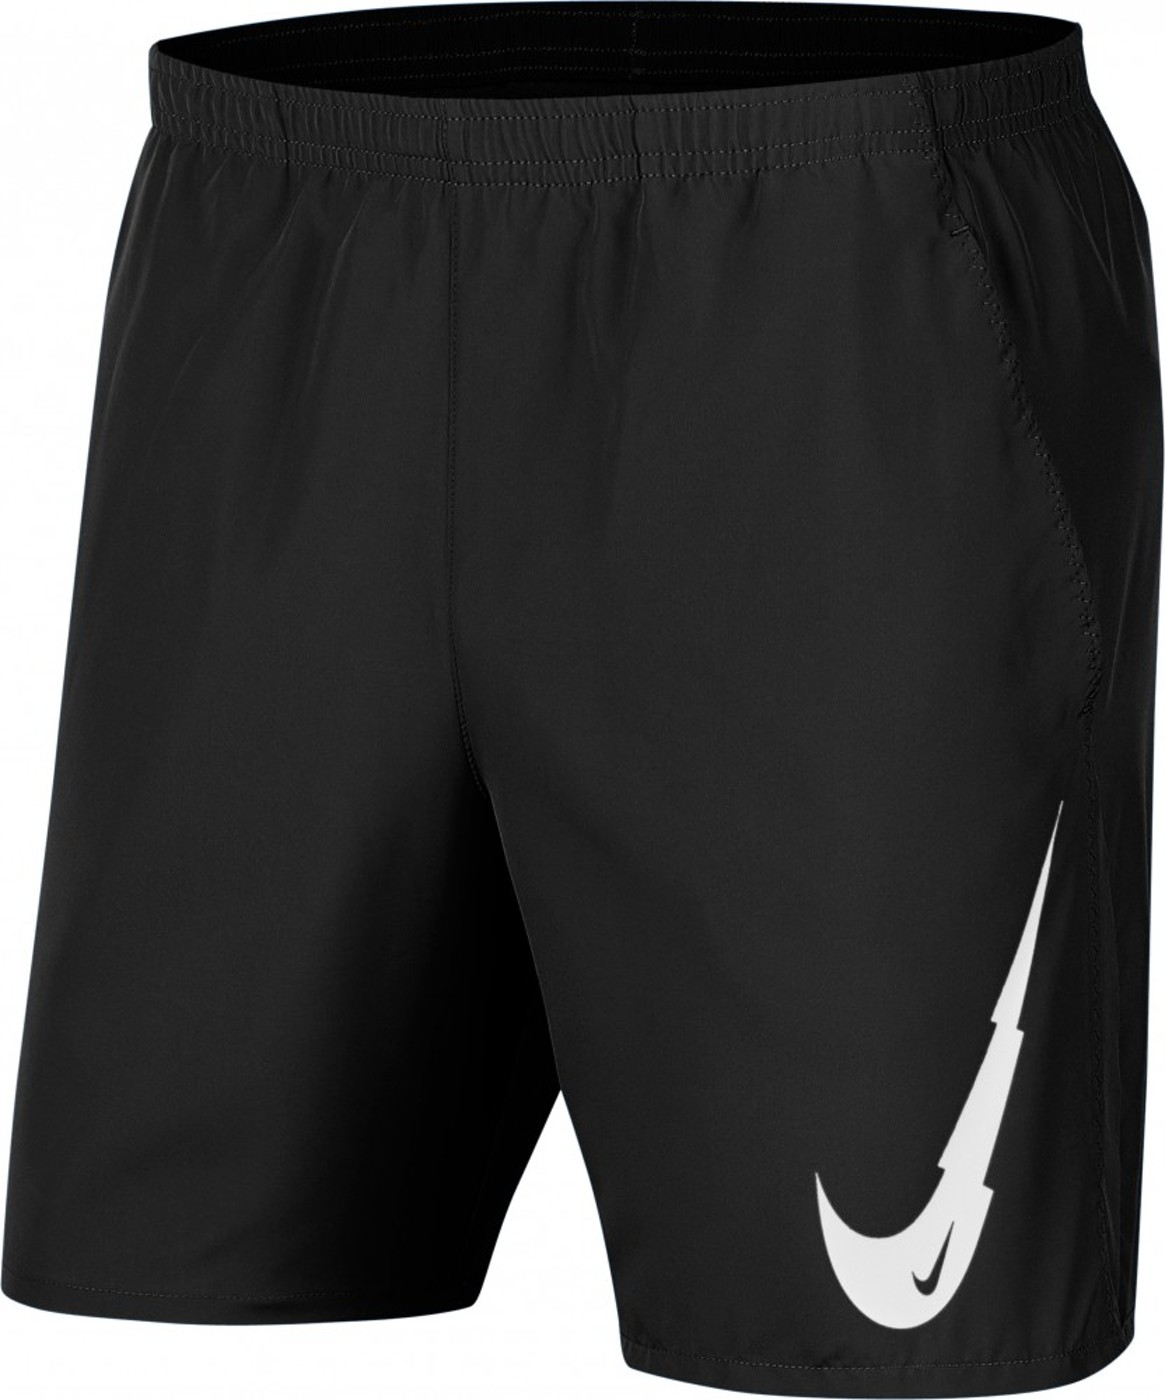 NIKE SORTS M NK RUN SHORT 7IN WR BF - Herren